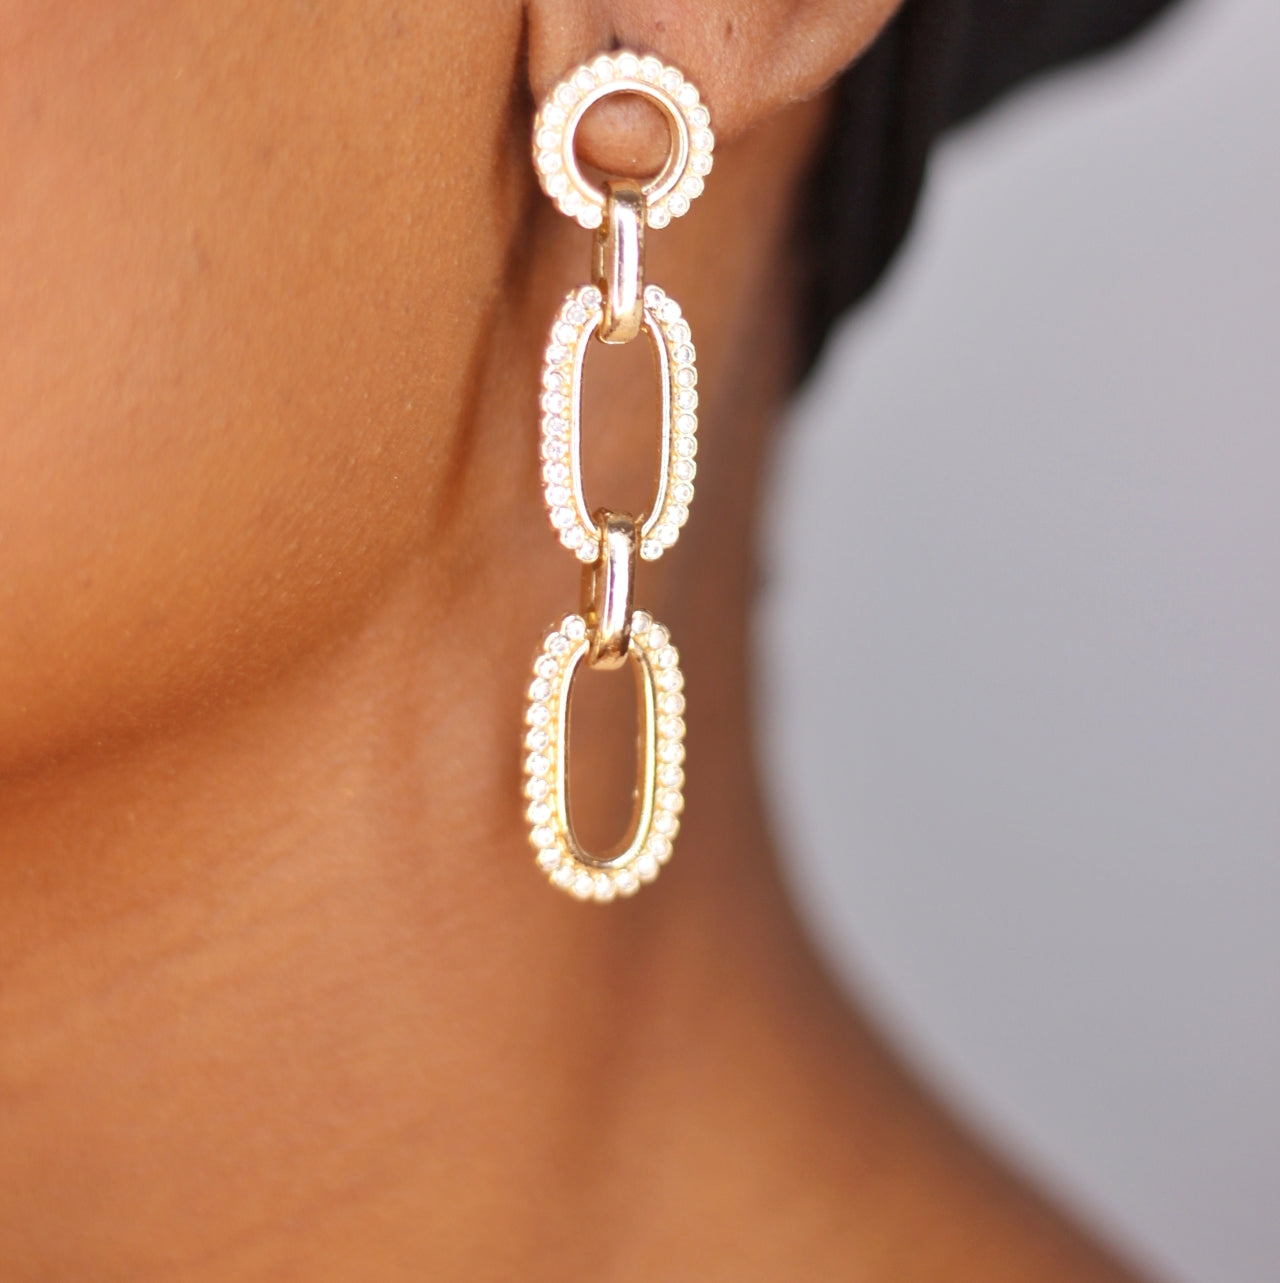 Buy beautiful Keep it Locked Sterling Silver Chain Earrings - AWKN Jewelry's